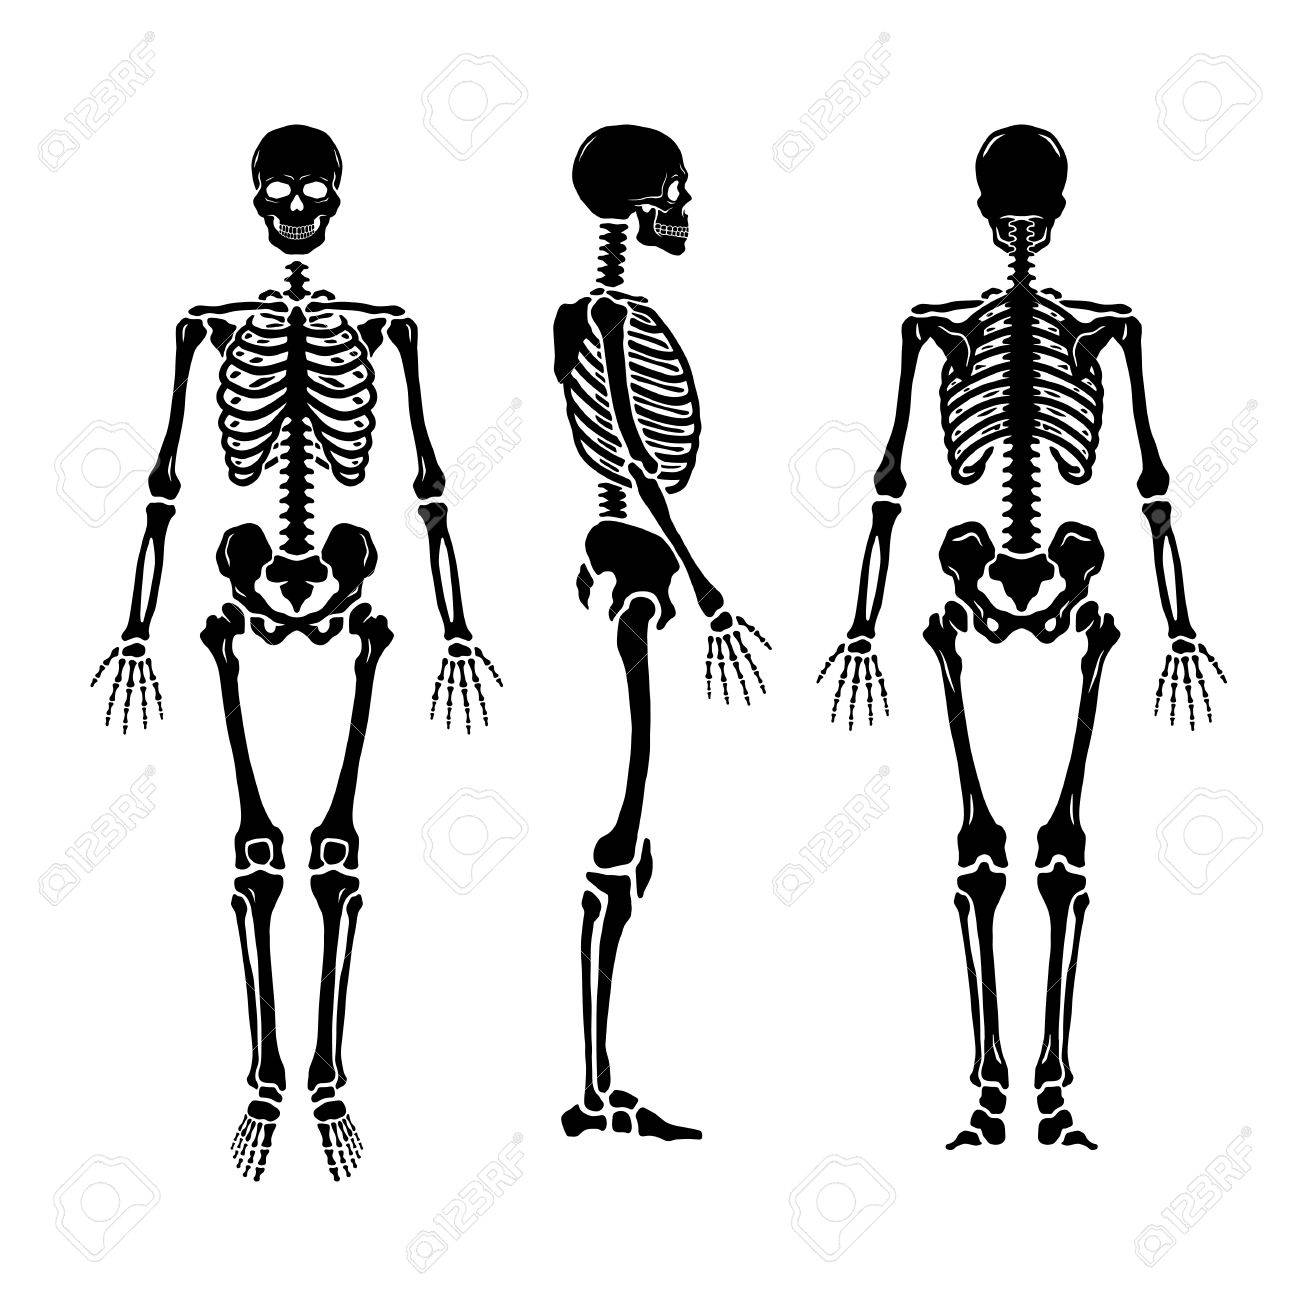 Anatomical human skeleton, in three positions. - 70264593